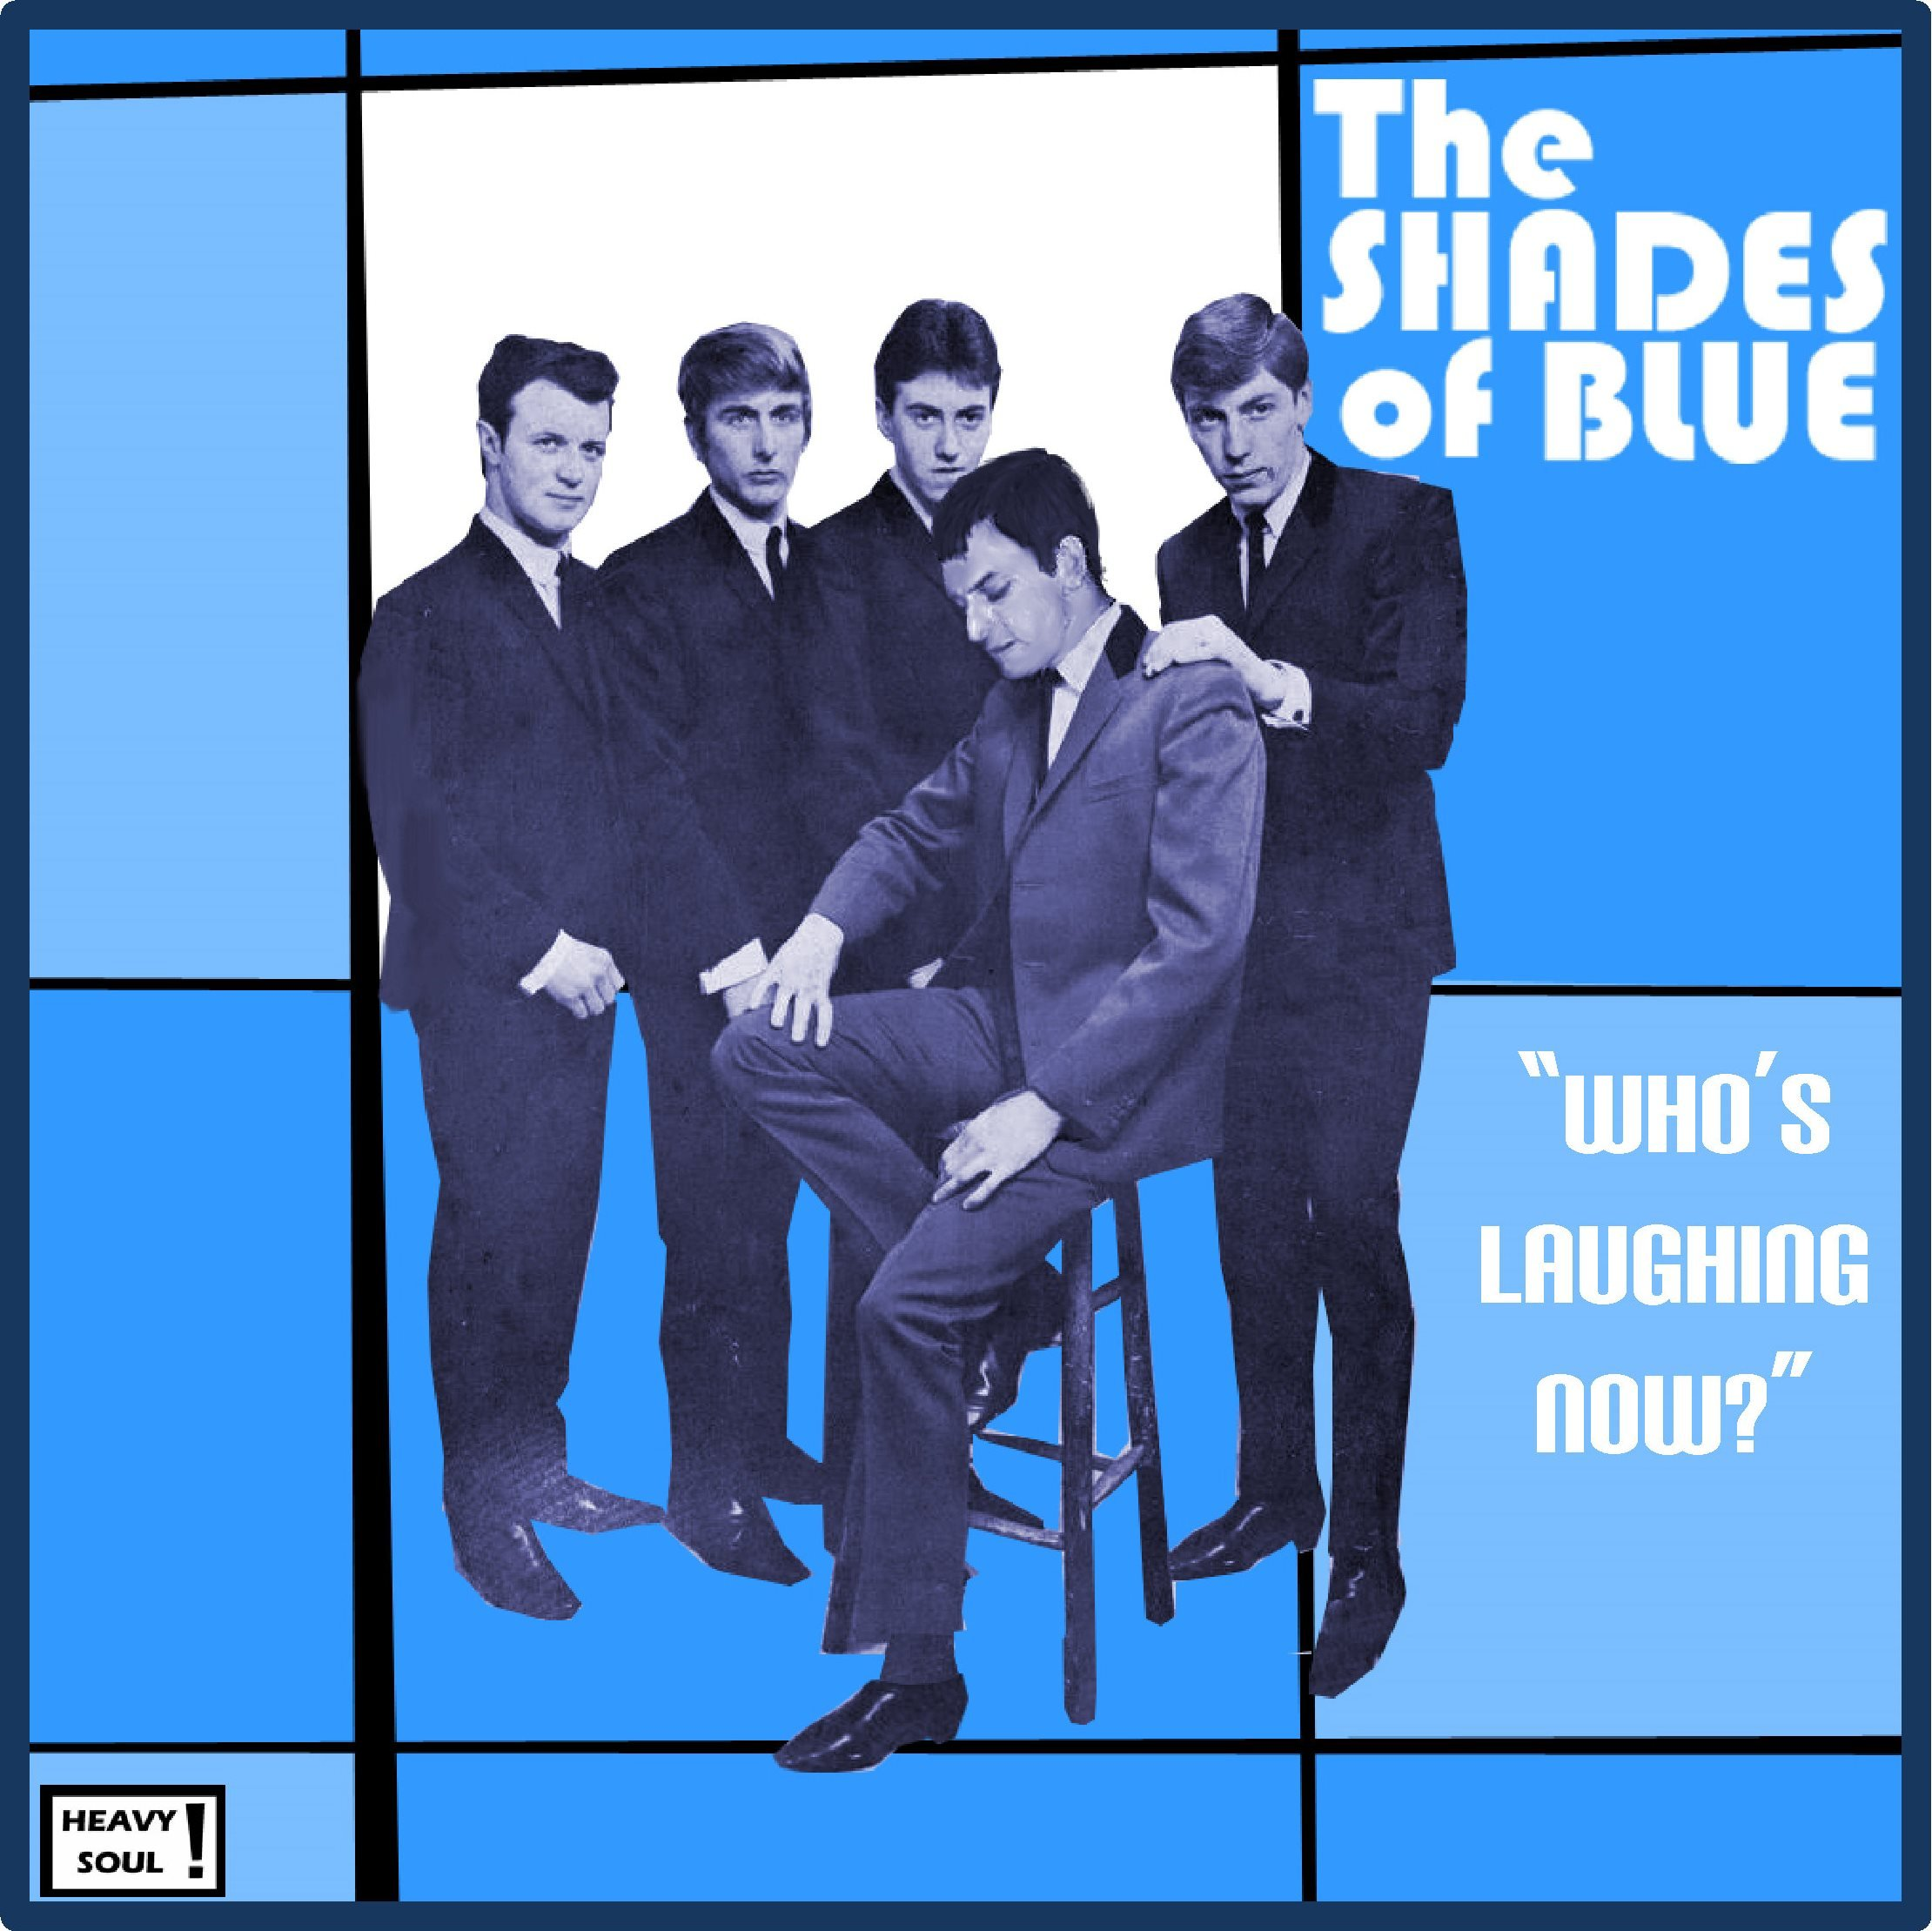 SHADES OF BLUE Who's Laughing Now?